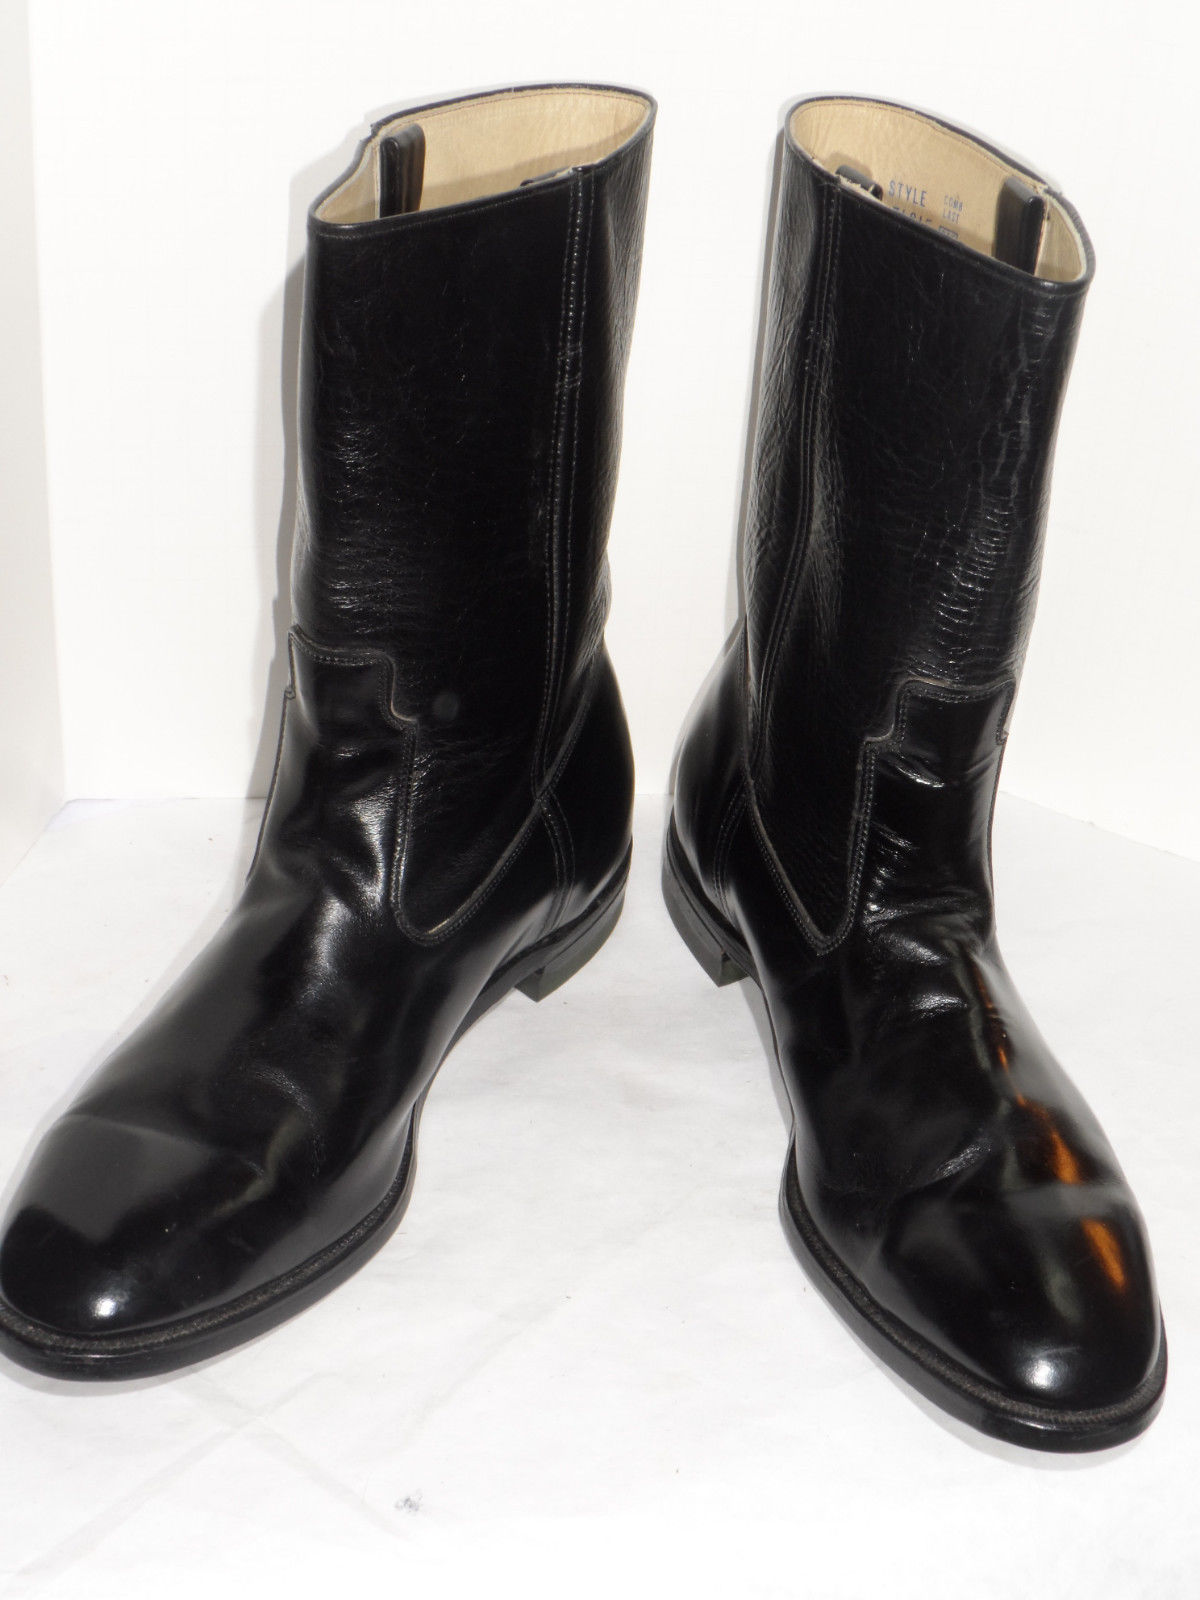 vintage 1970s sears black leather s motorcycle boots